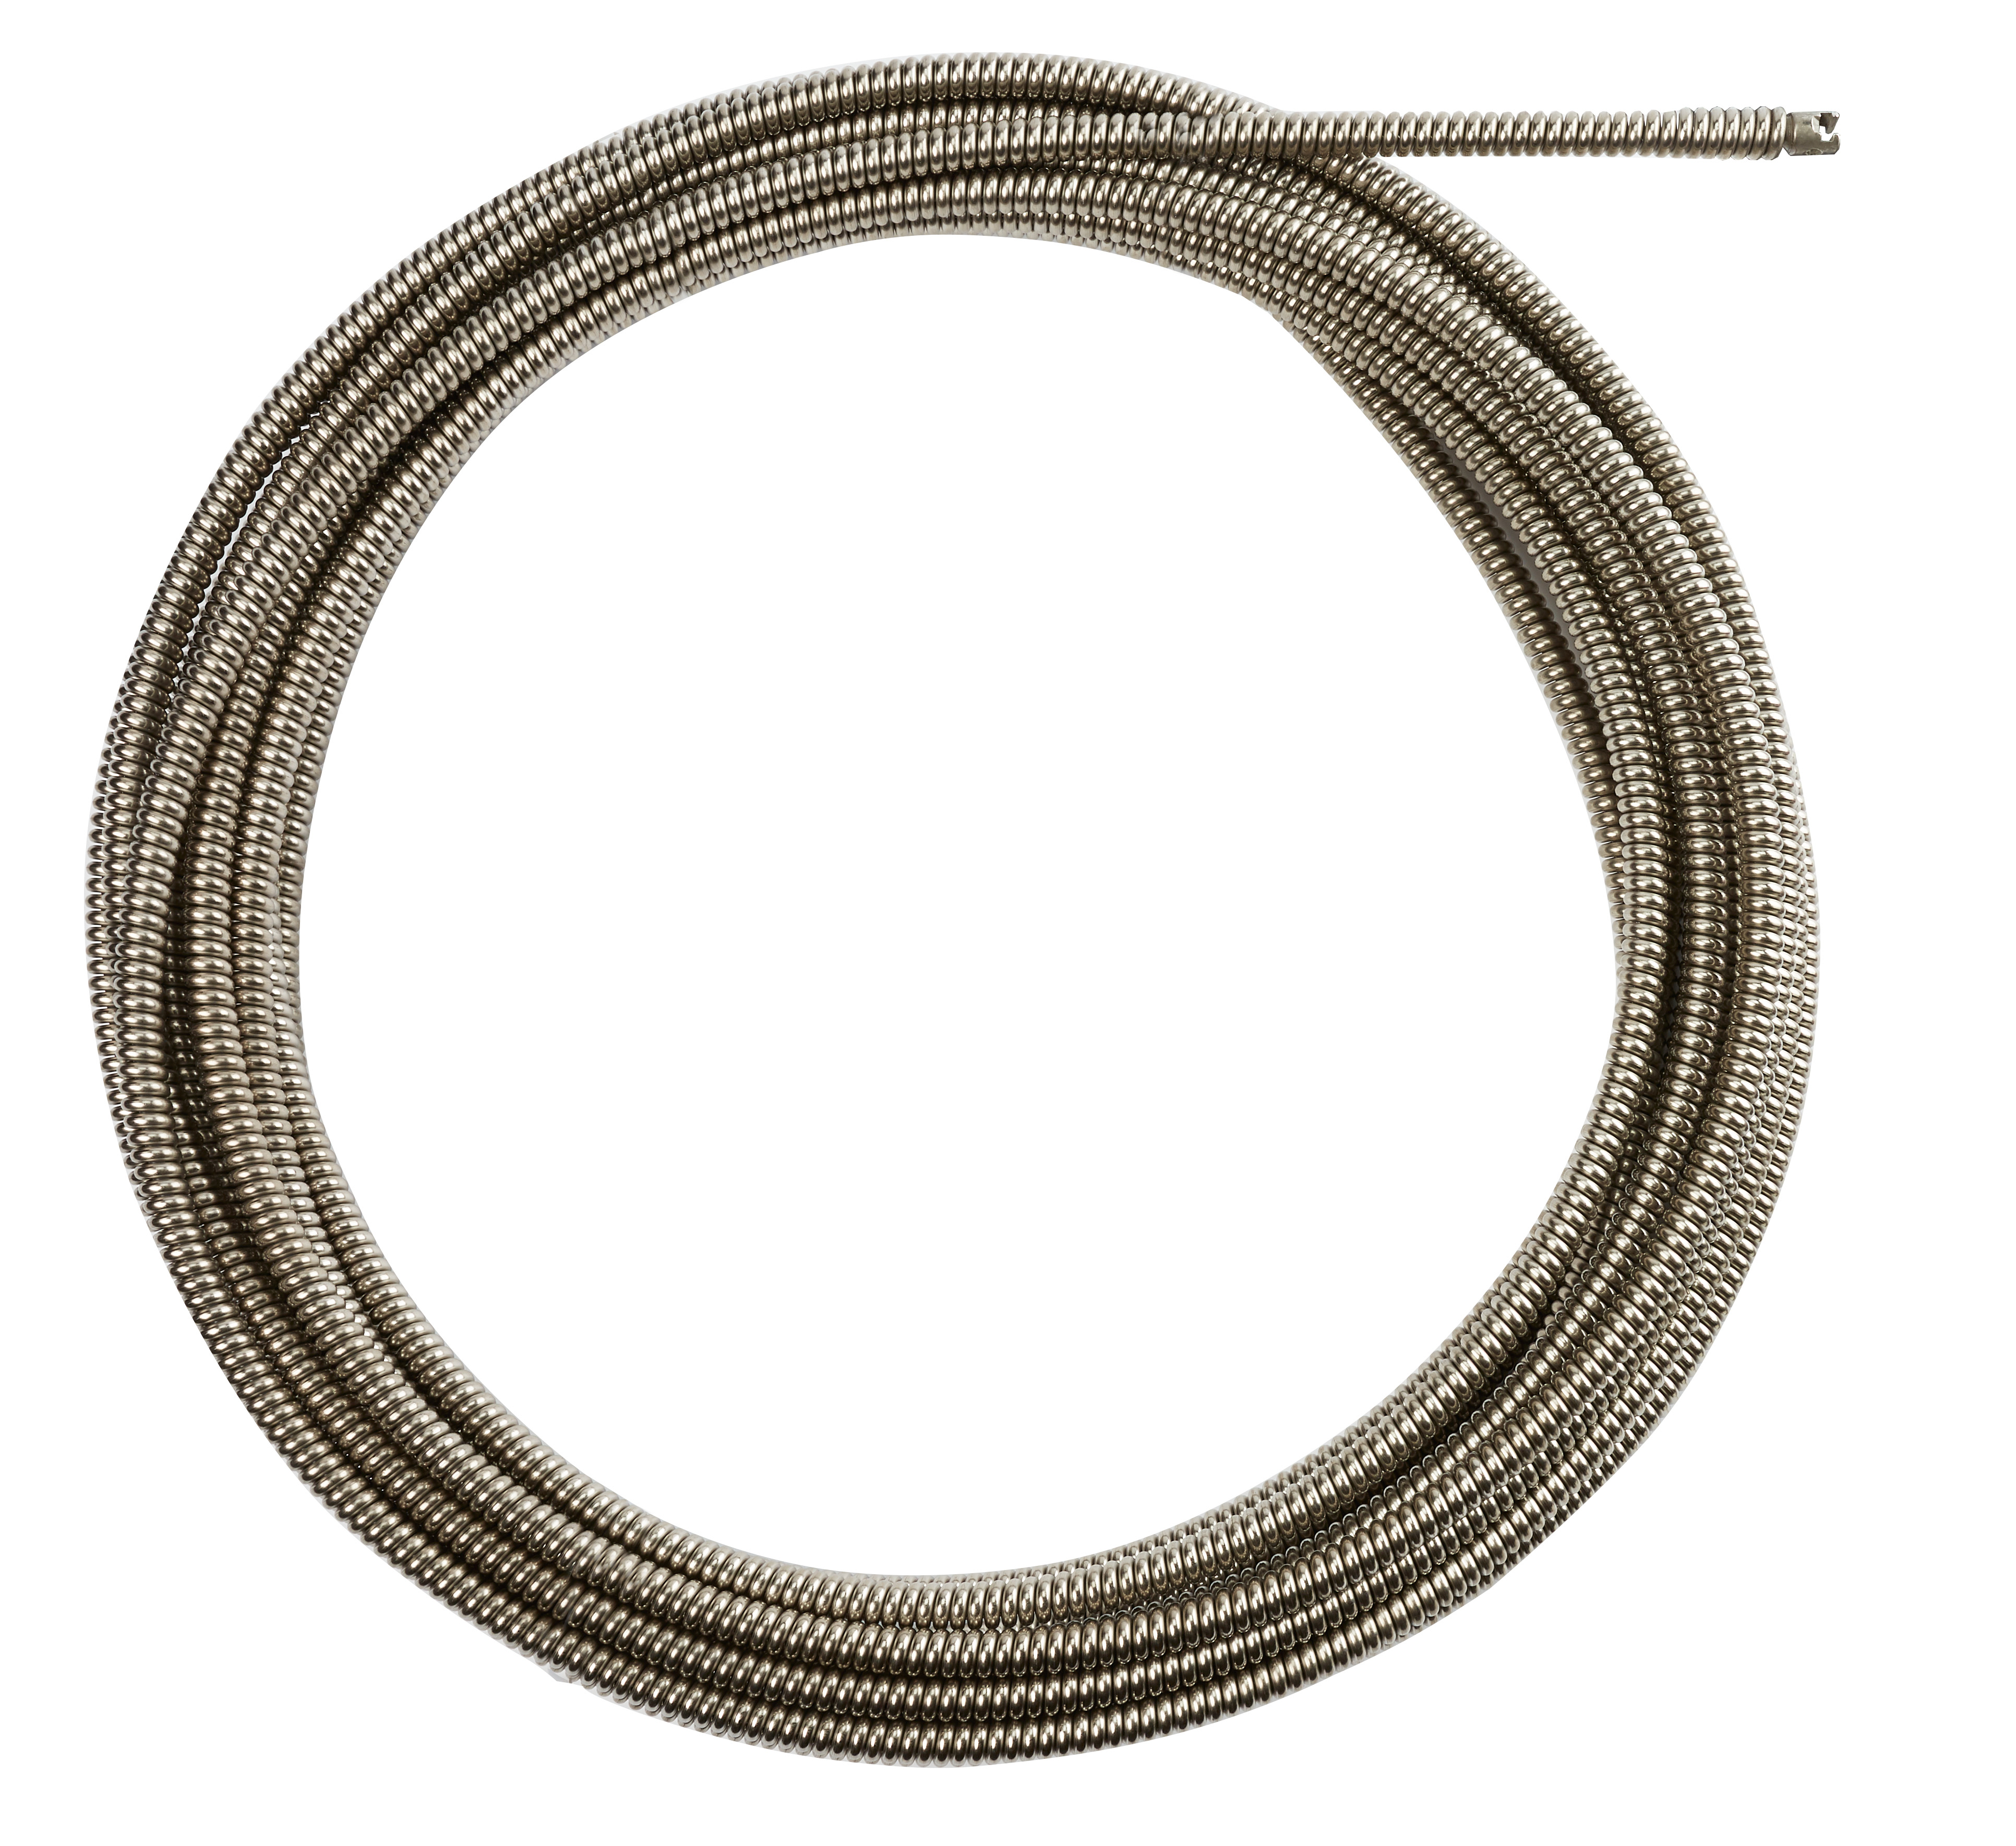 Milwaukee® 48-53-2774 Inner Core Coupling Drain Cleaning Cable, 1/2 in, Steel, For Use With Drain Cleaning Machines, 1-1/4 to 2-1/2 in Drain Line